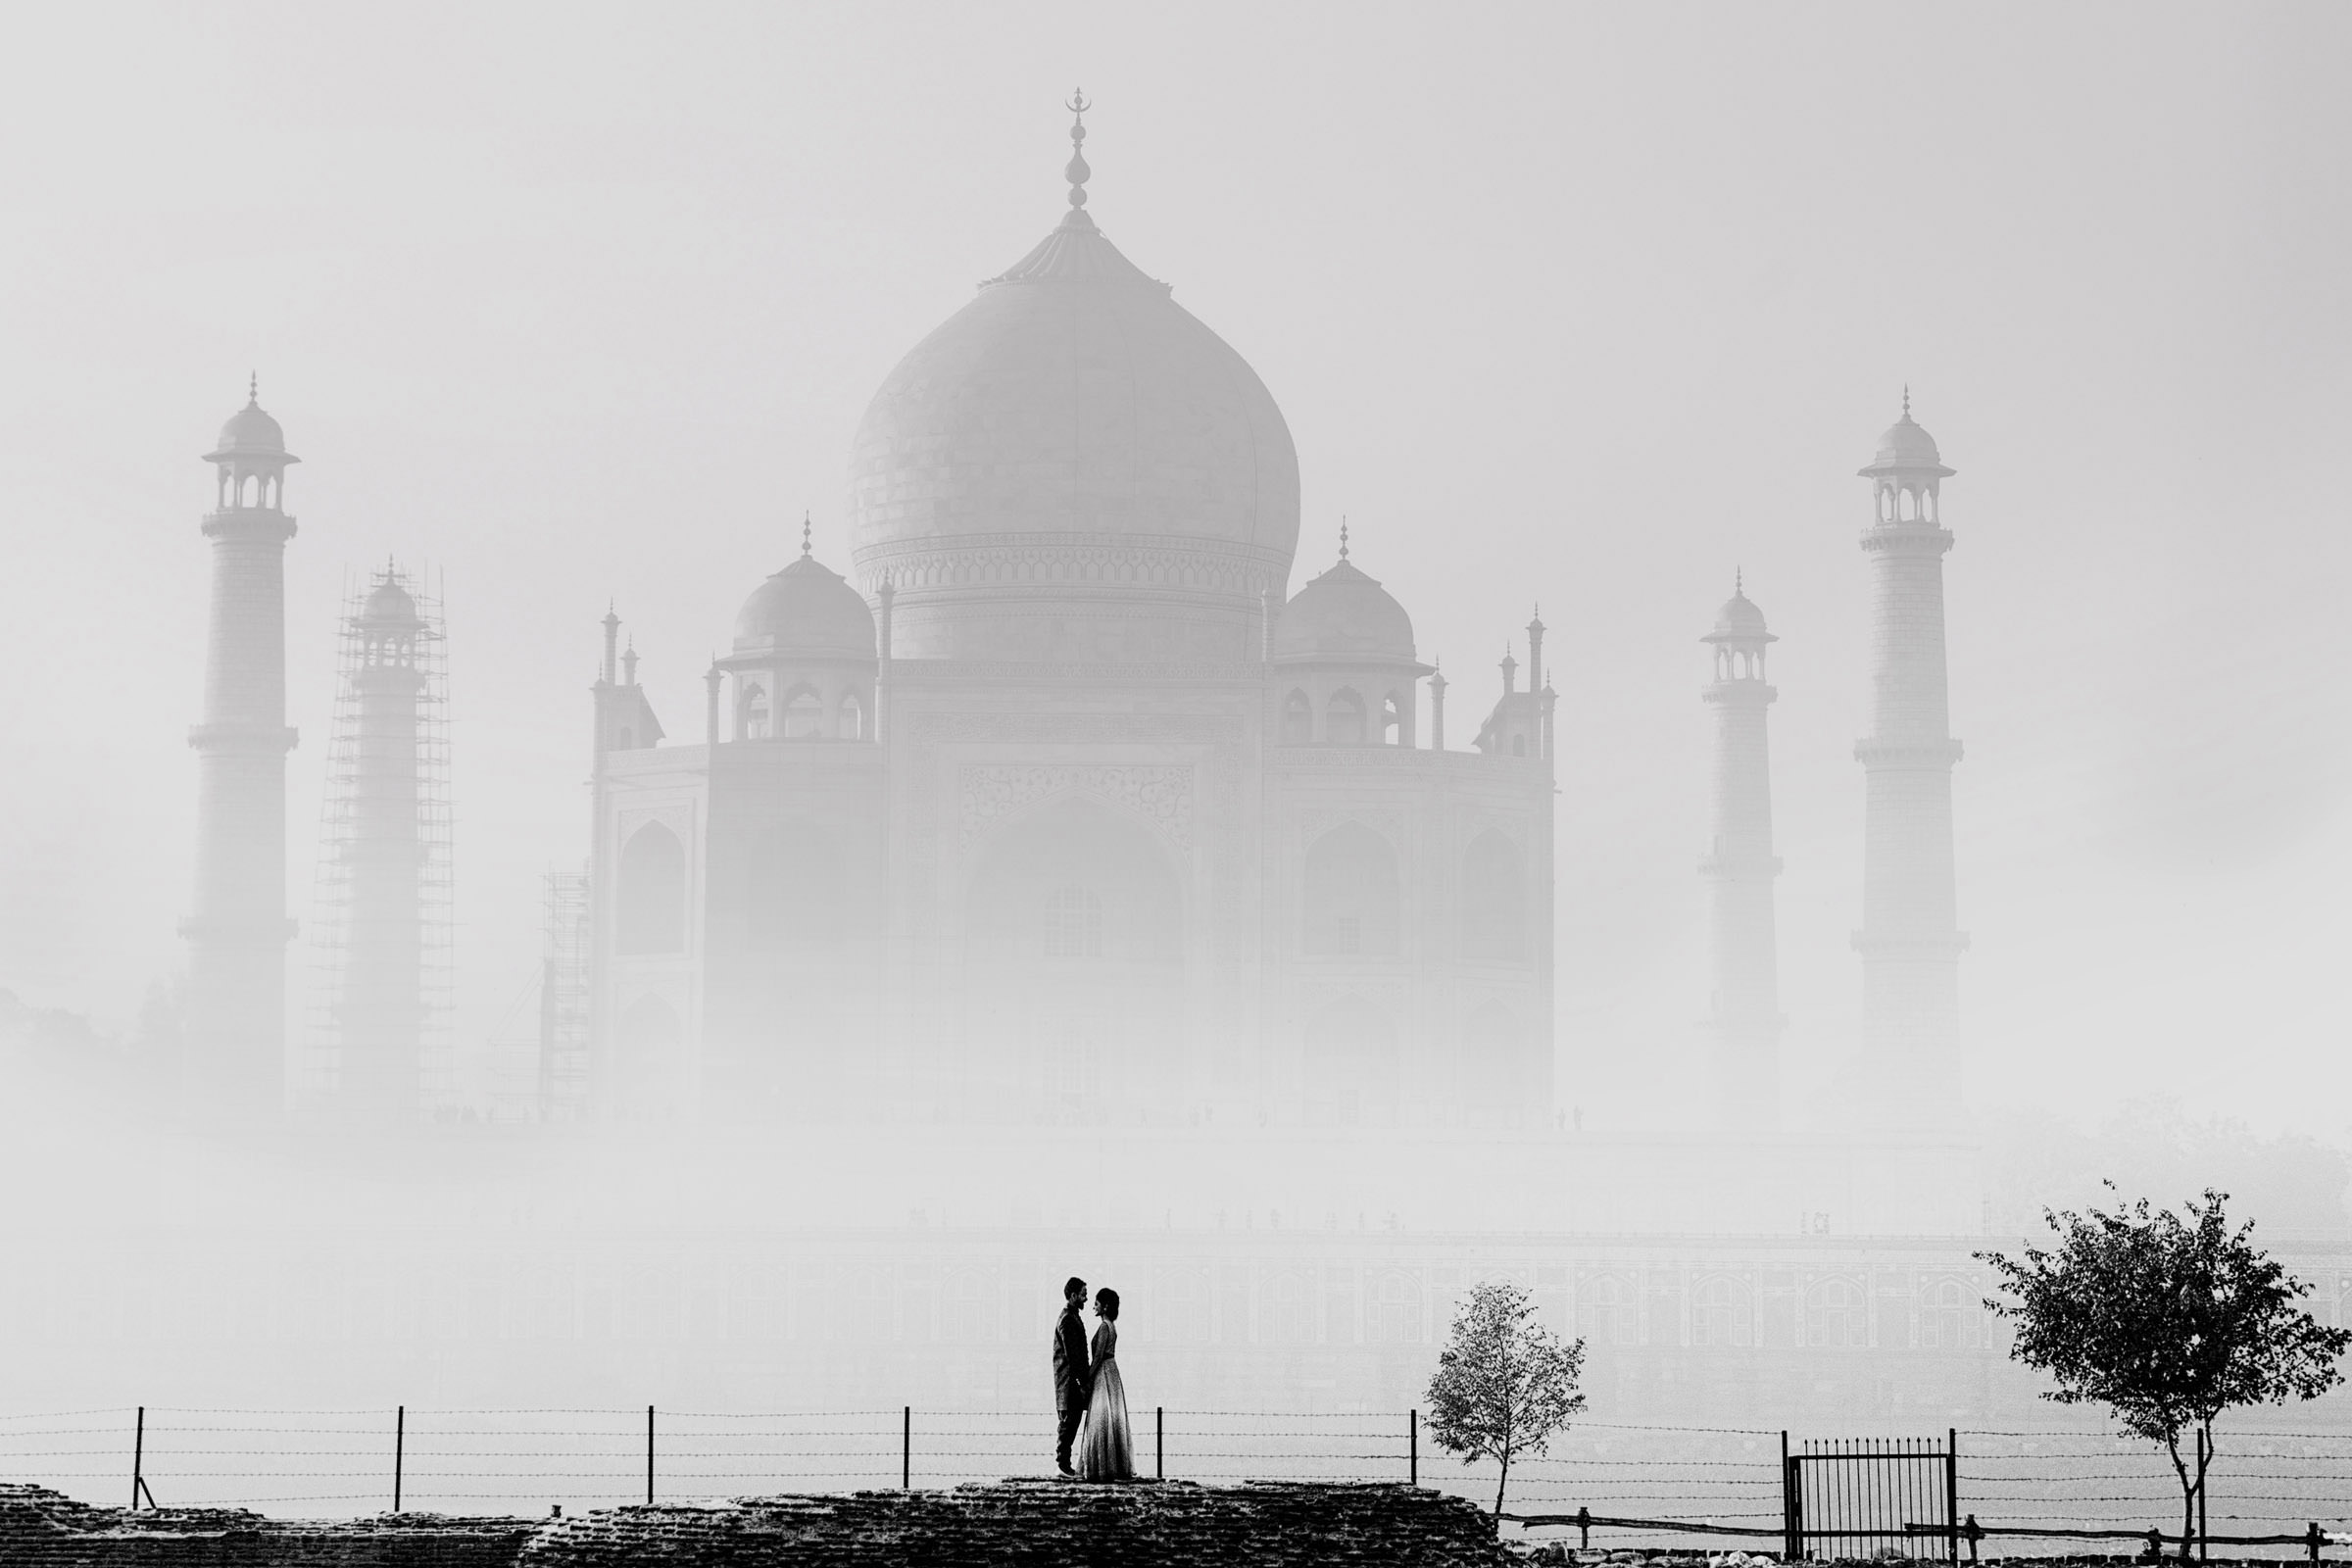 Couple against Russian Orthodox church - photo by Shutterink Photography